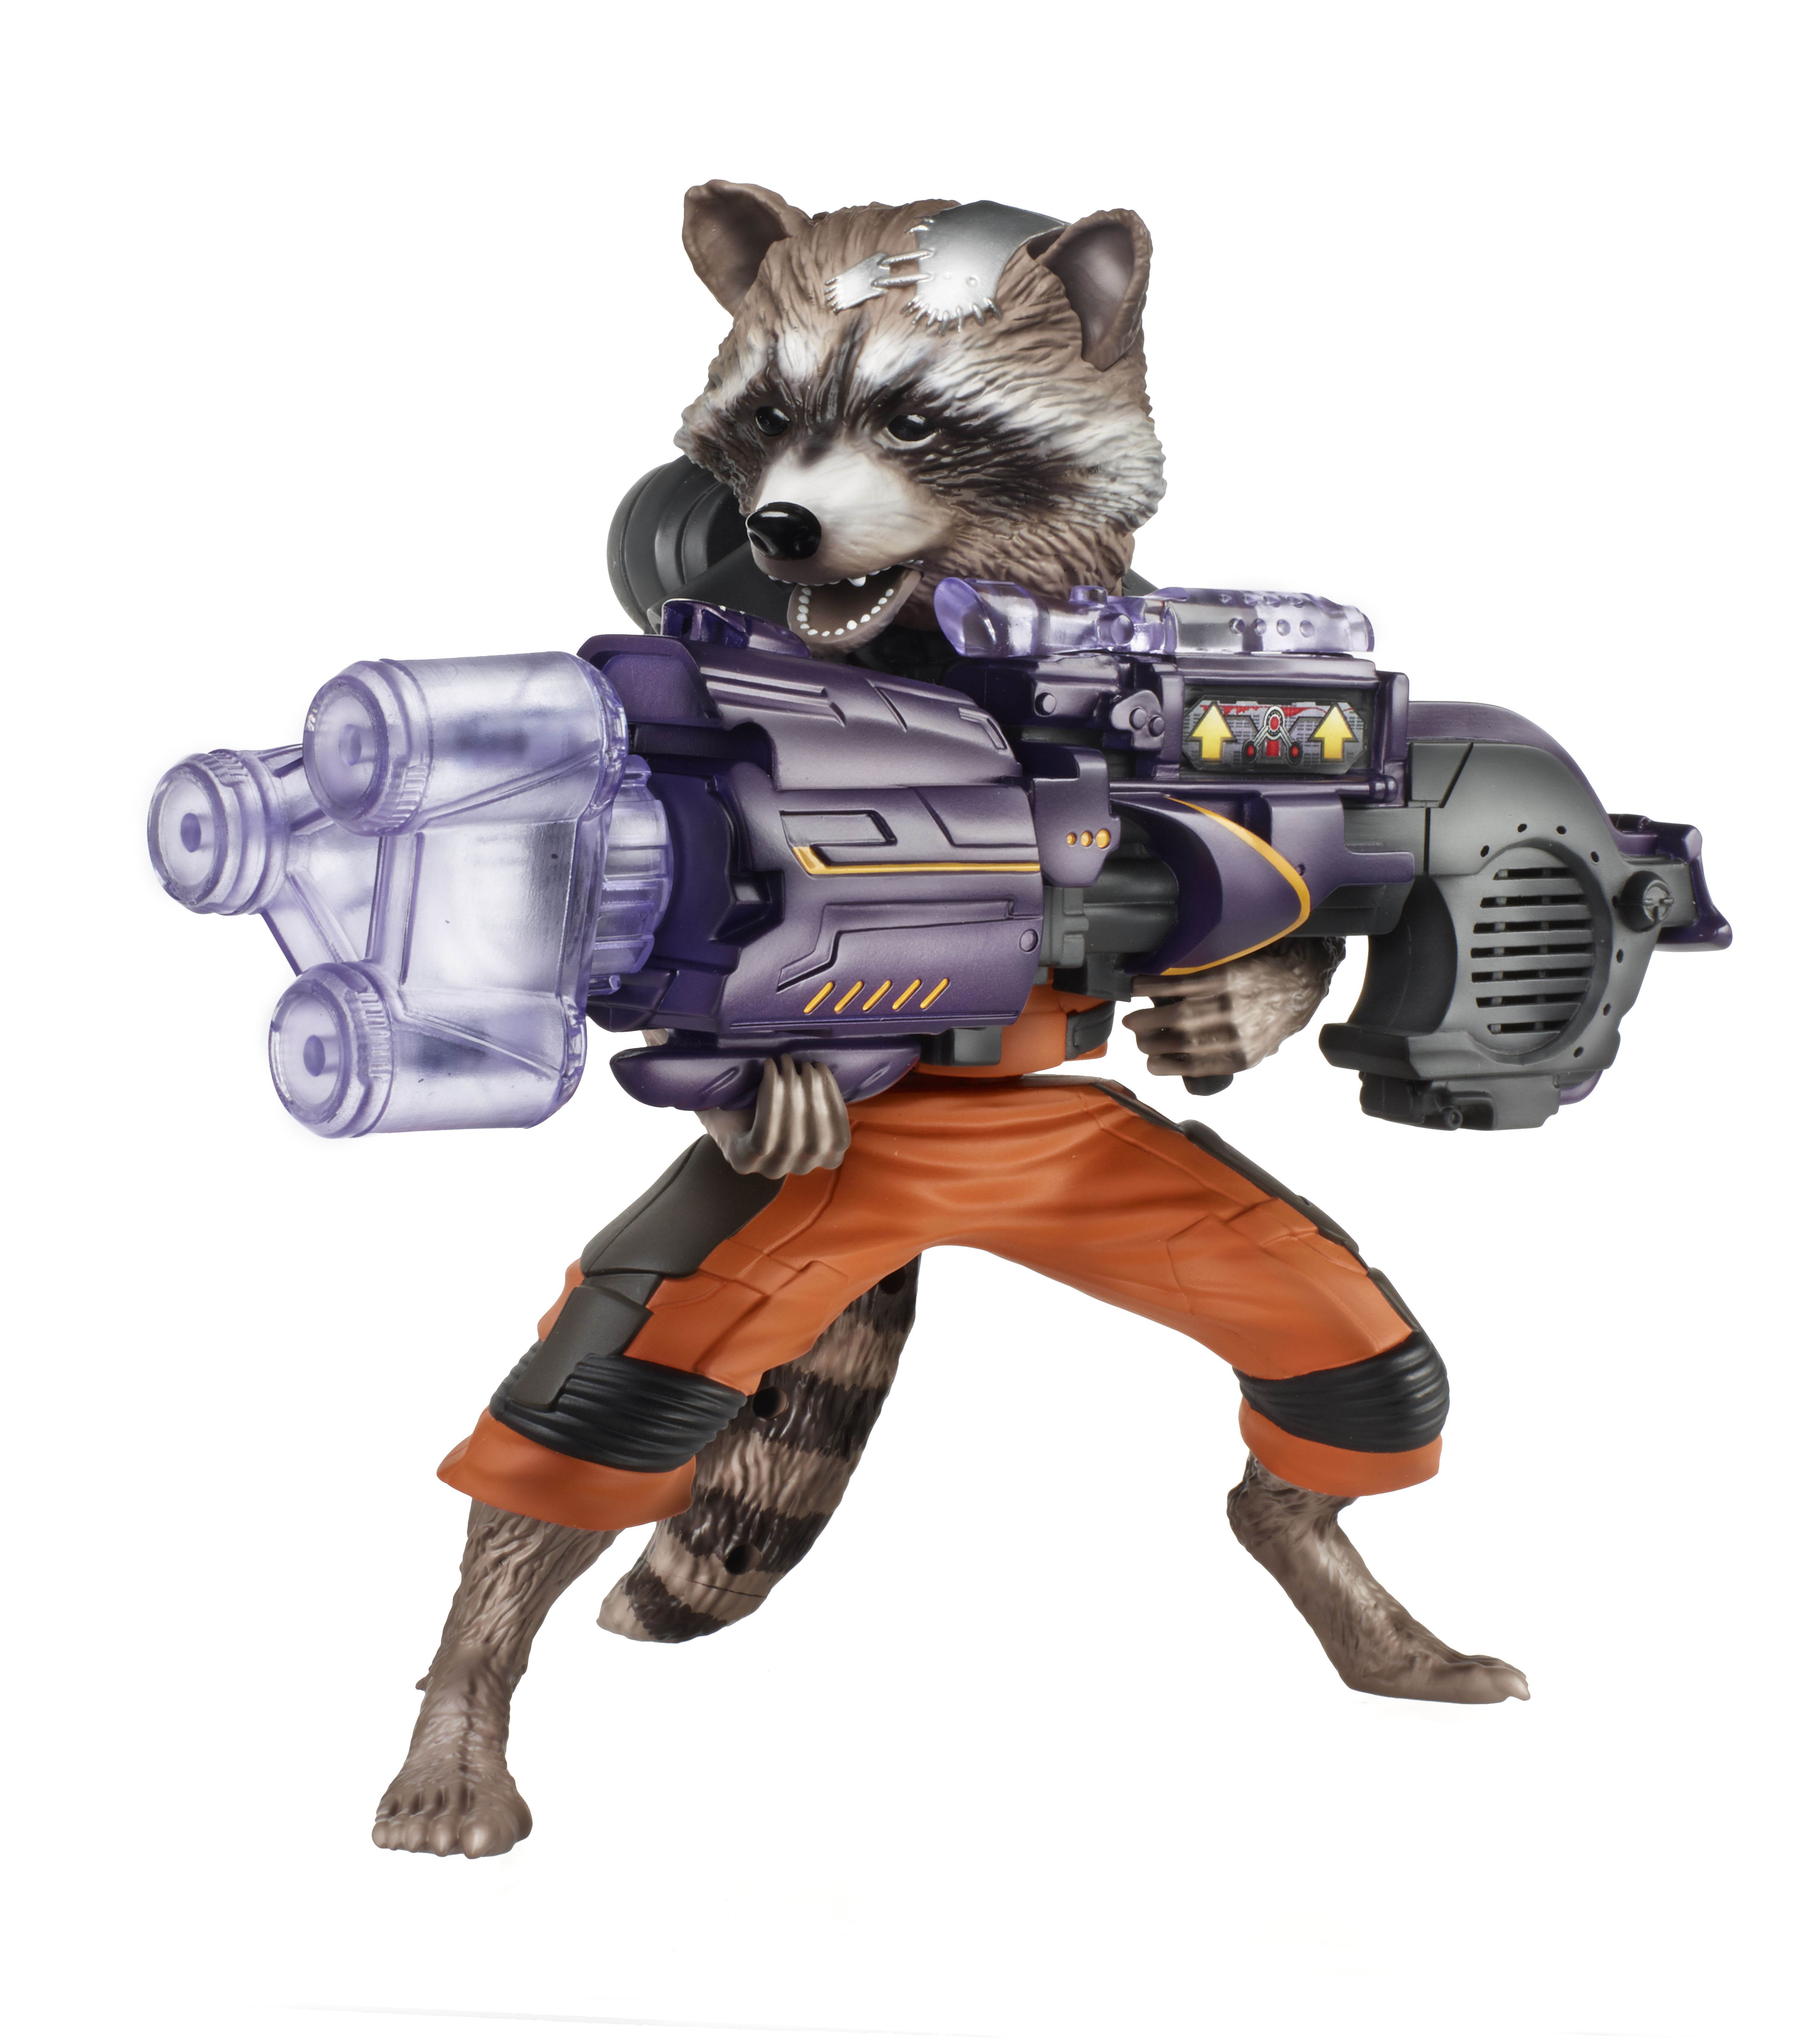 Star Lord And Rocket Raccoon By Timothygreenii On Deviantart: Guardians Of The Galaxy Toys Official